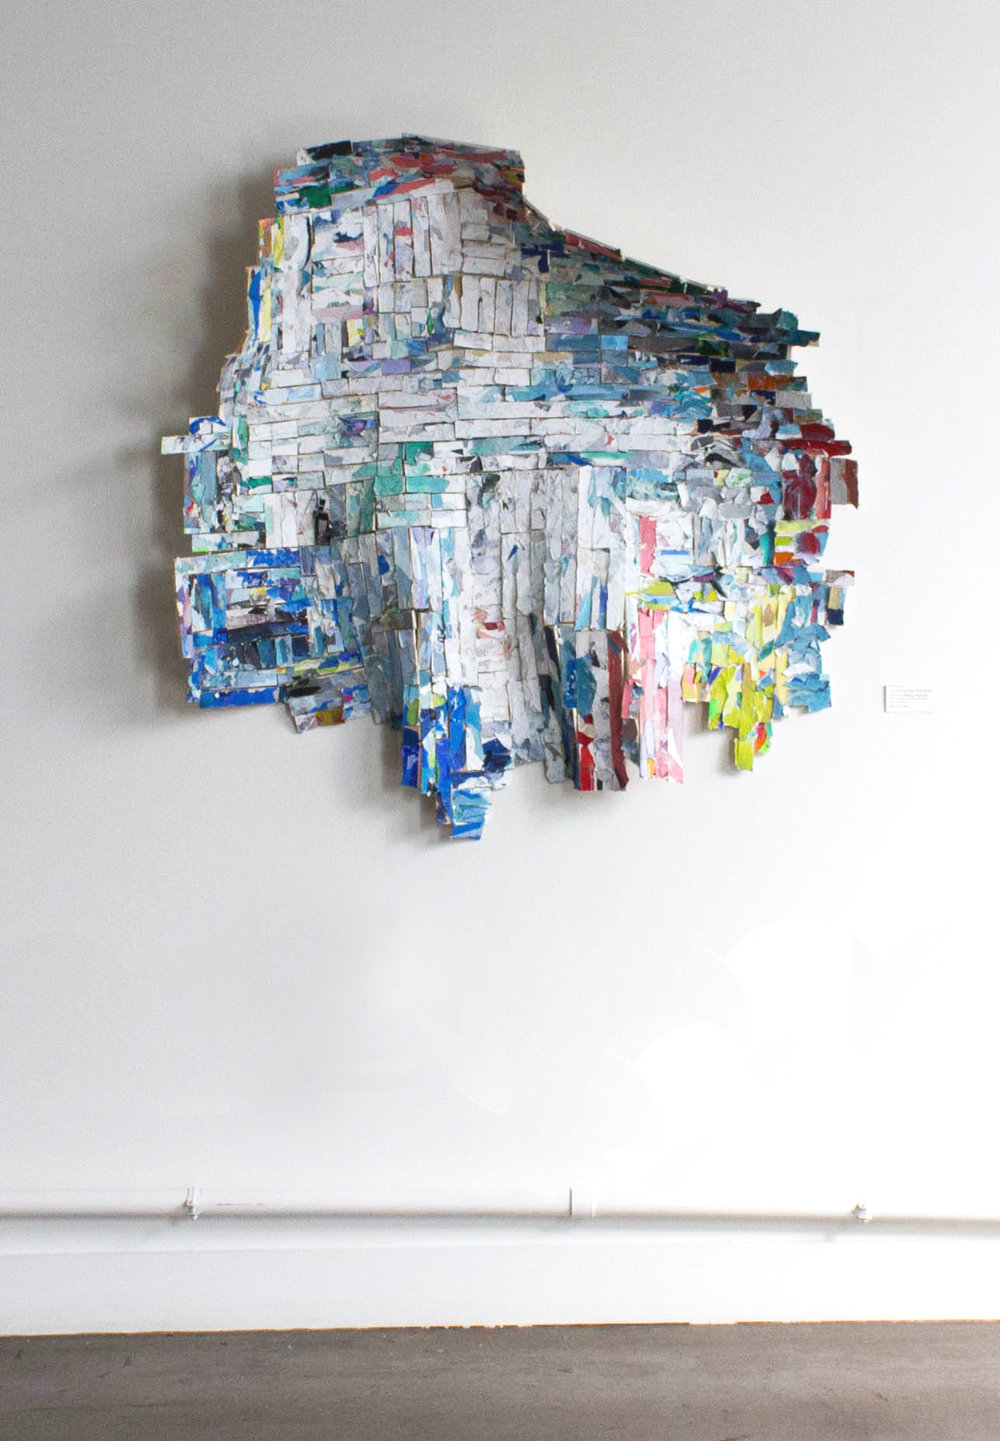 """Everything Stays the Same and Everything Changes, Approximately 54""""x54"""", Trash, Scrap Paper and Wood, Plastic, 2016, [Unavailable]"""